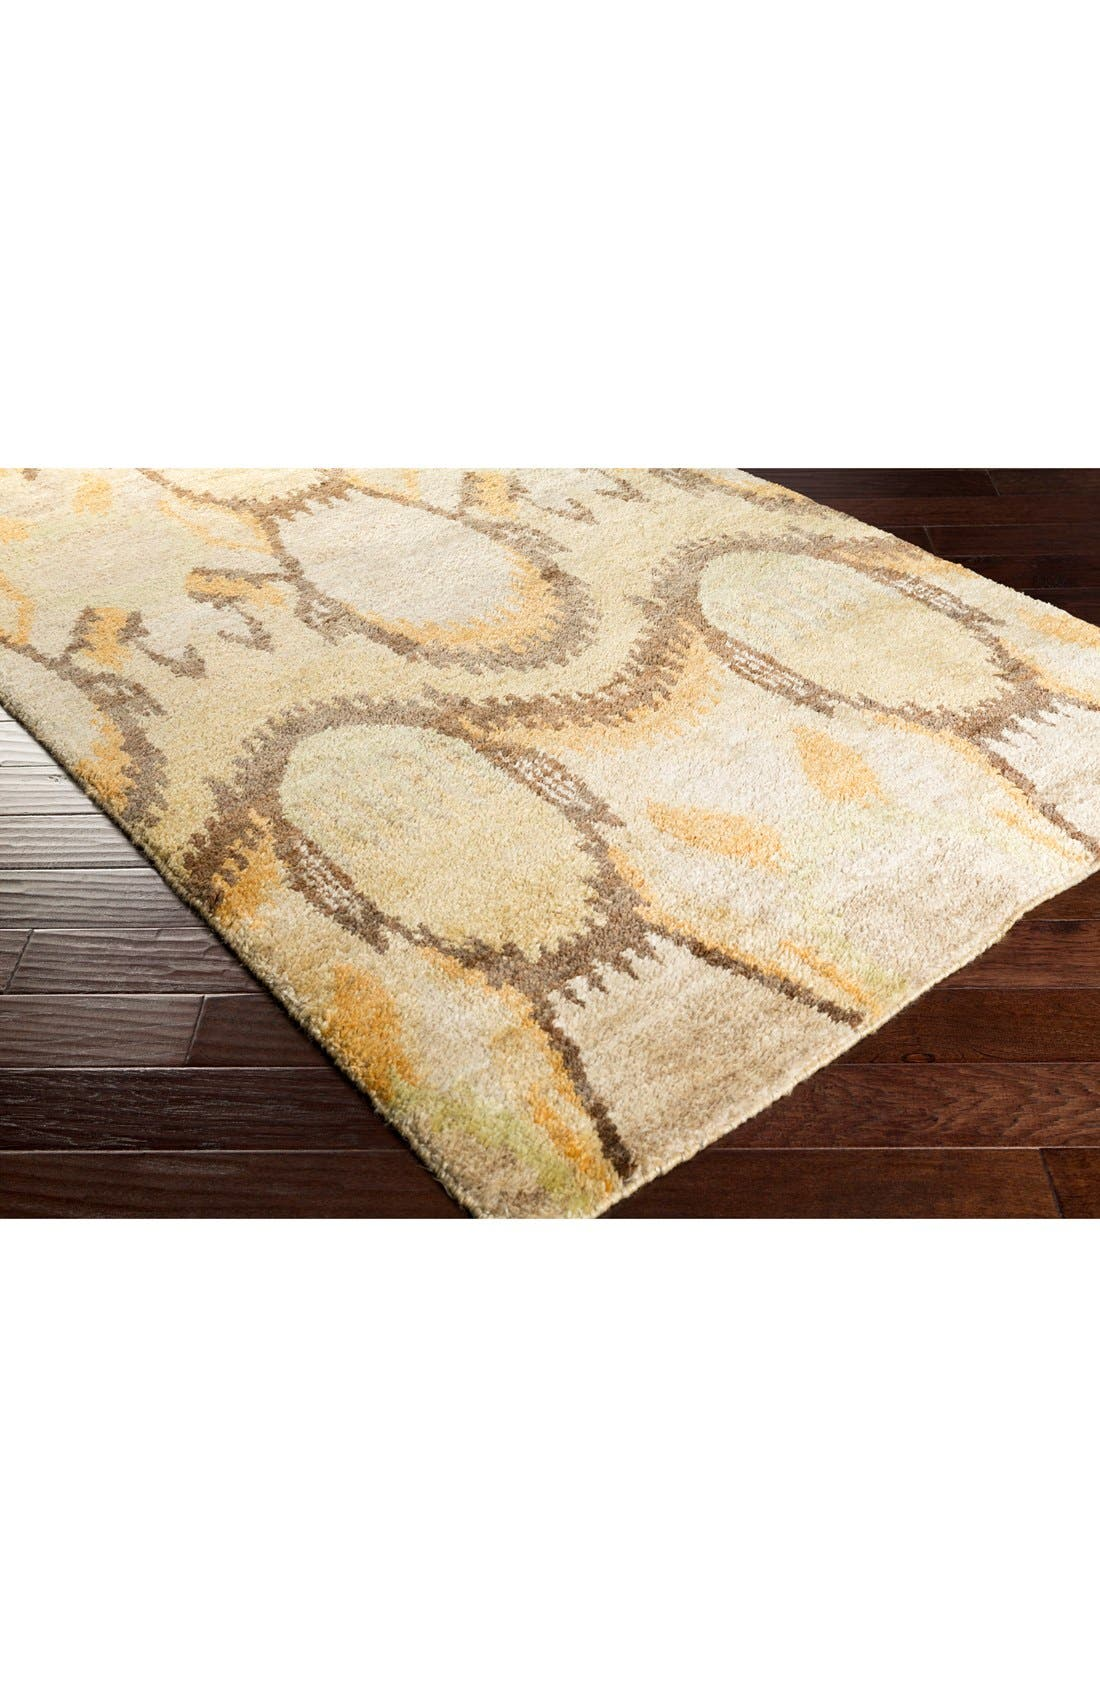 'Scarborough' Jute Rug,                             Alternate thumbnail 2, color,                             Gold/ Beige/ Olive